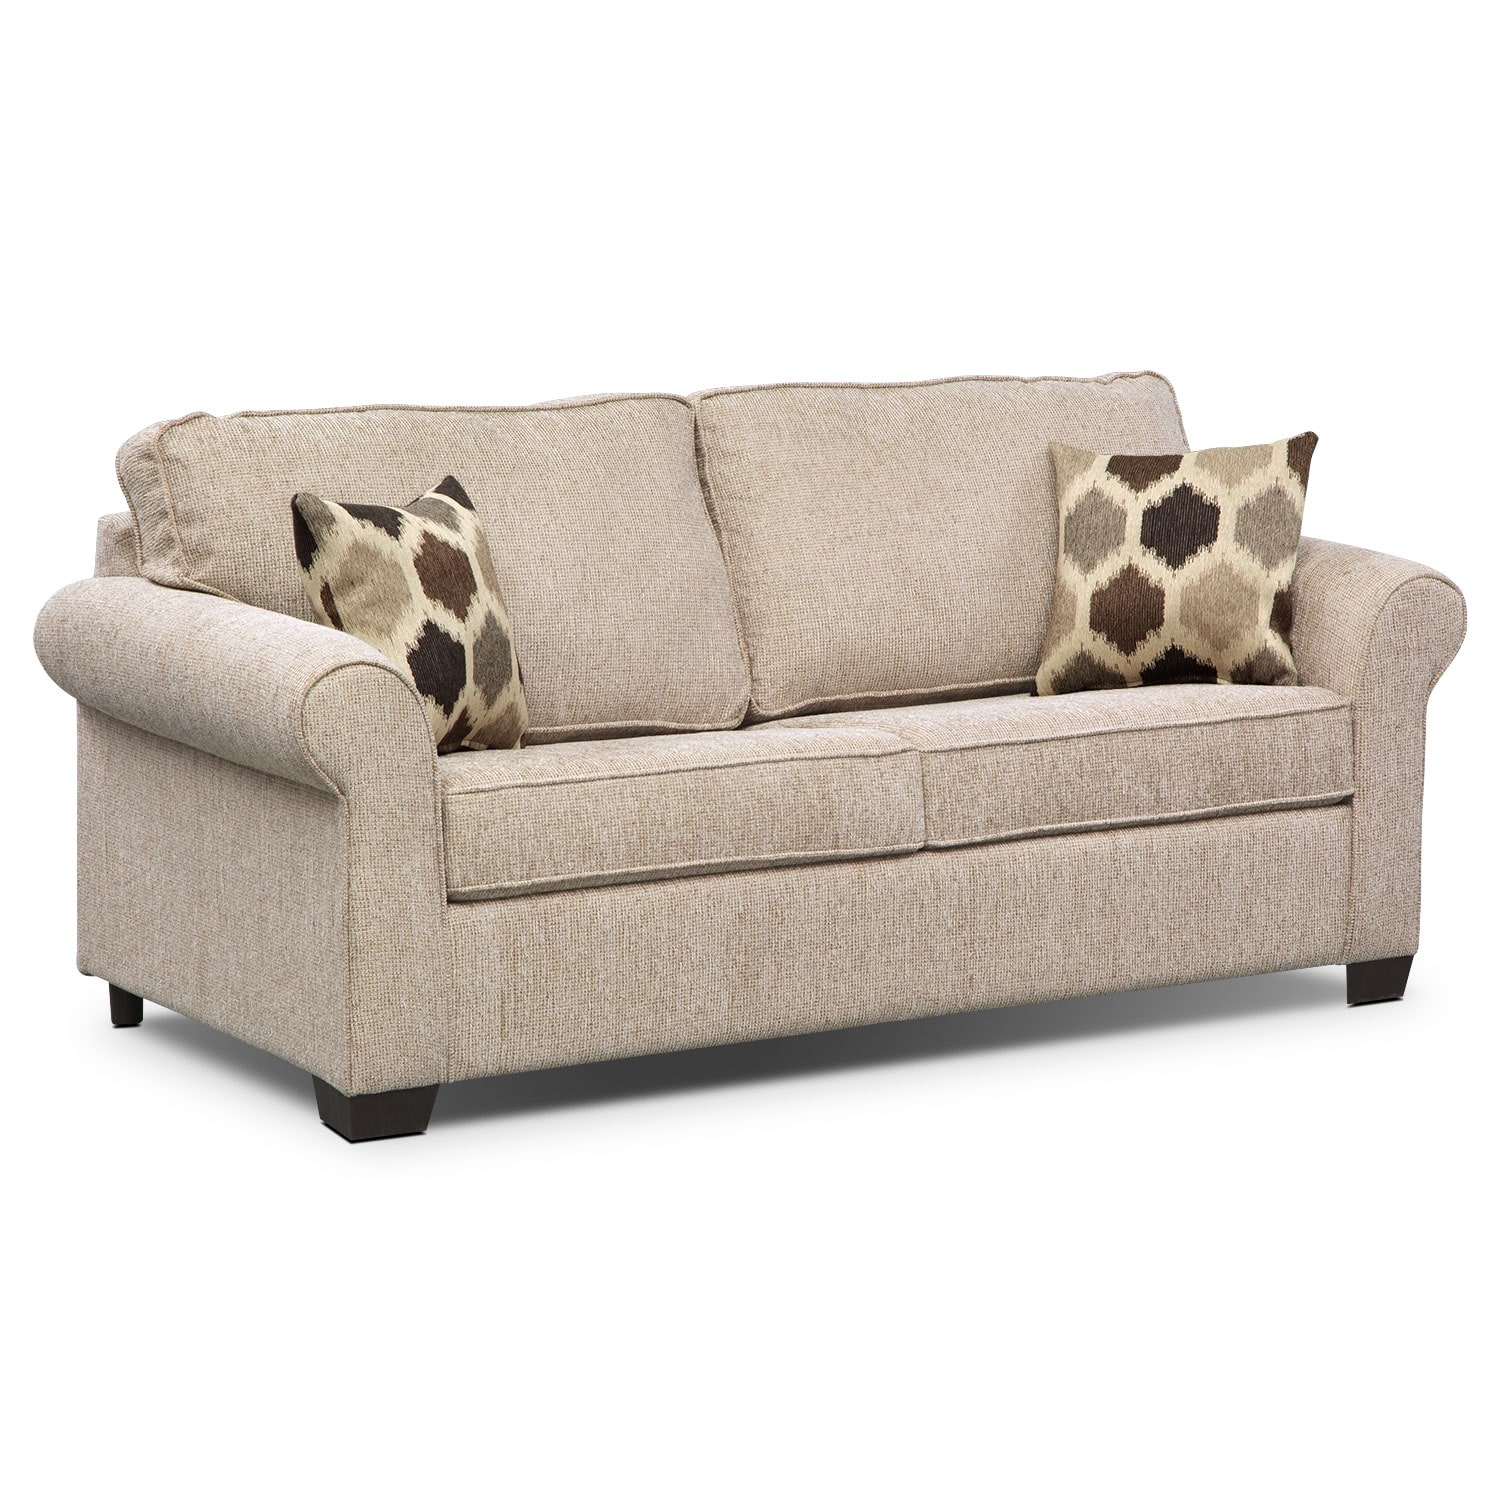 Fletcher Full Memory Foam Sleeper Sofa Beige Value City Furniture